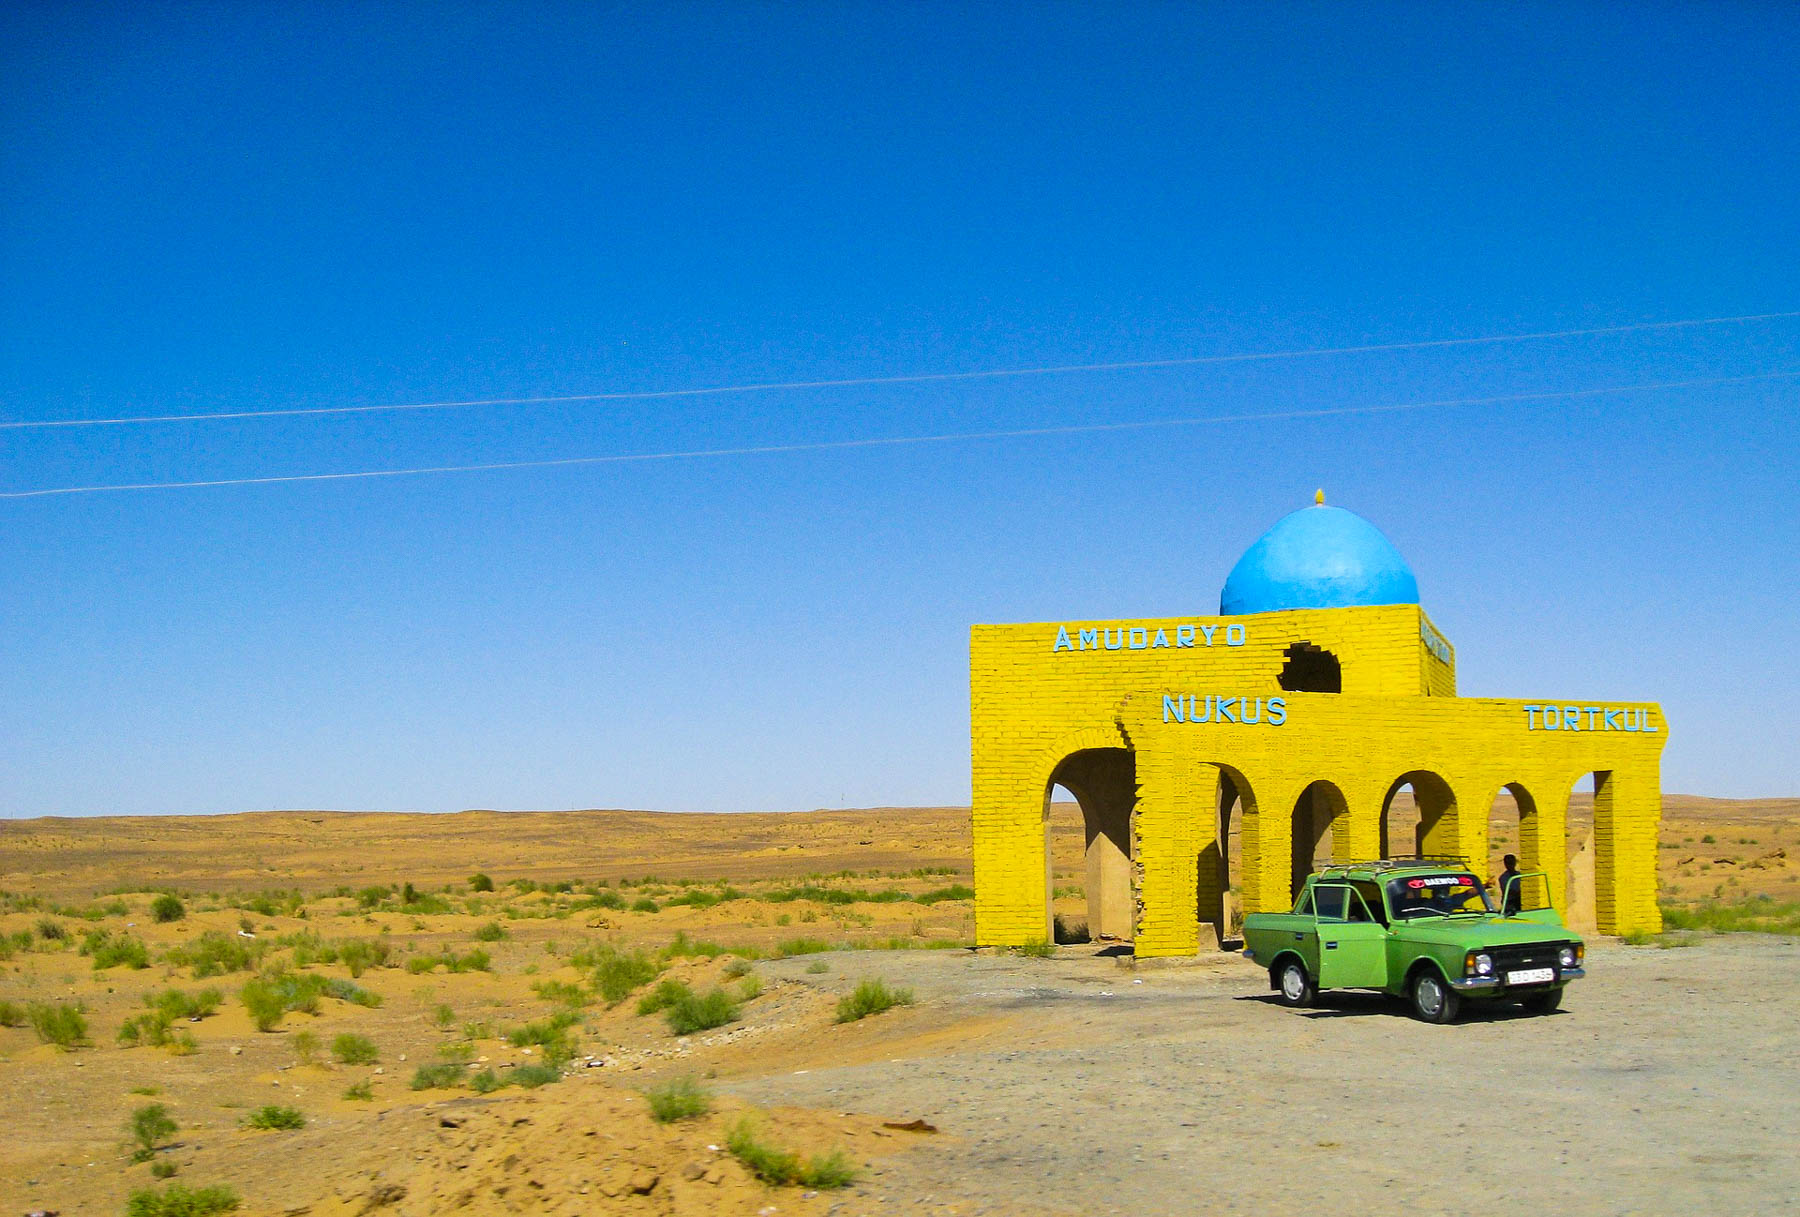 A bus stop in the desert near Nukus